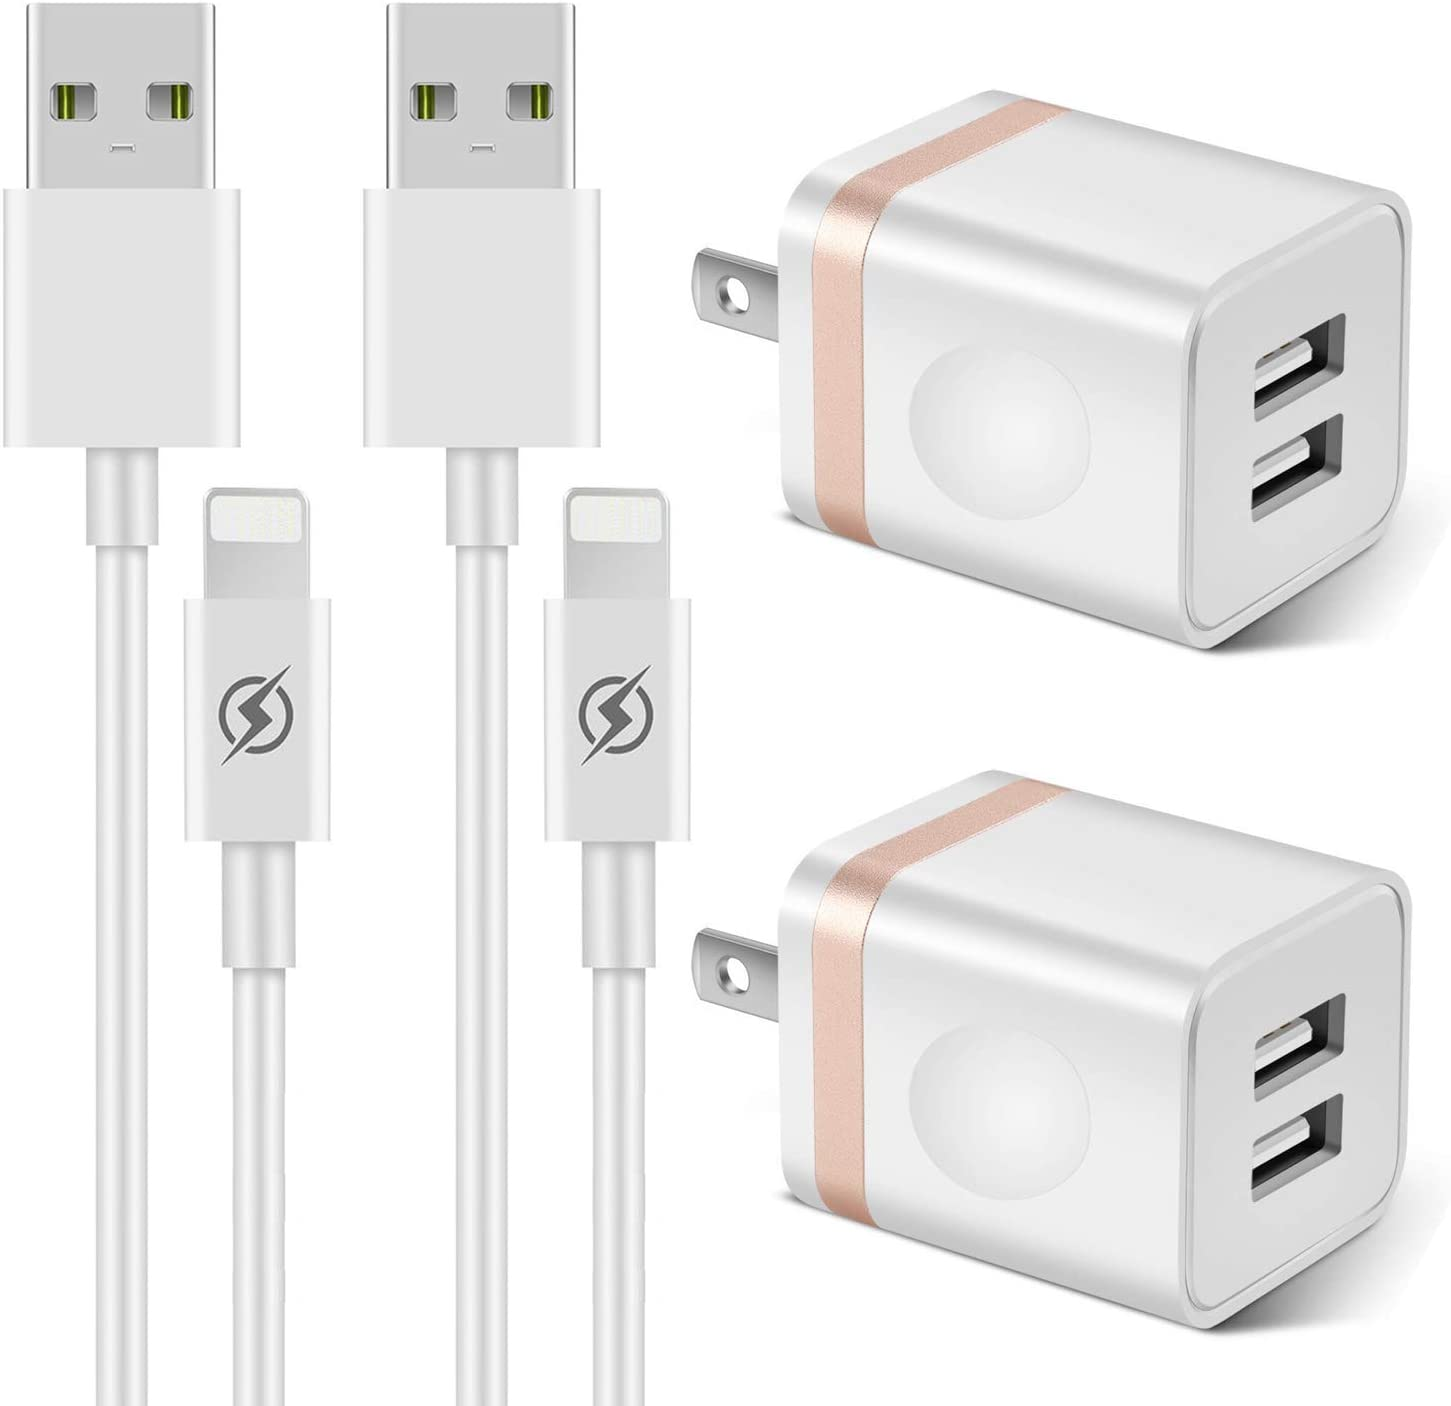 LUOSIKE Phone Charger 3ft Cable with Plug (4- in-1), Dual USB Wall Charger Adapter with 3 Foot Long Charging Cord Compatible with Phone 11/11 Pro/Xs/Xs Max/XR/X 8/7/6/6S Plus SE/5S/5C, Pad-Gold